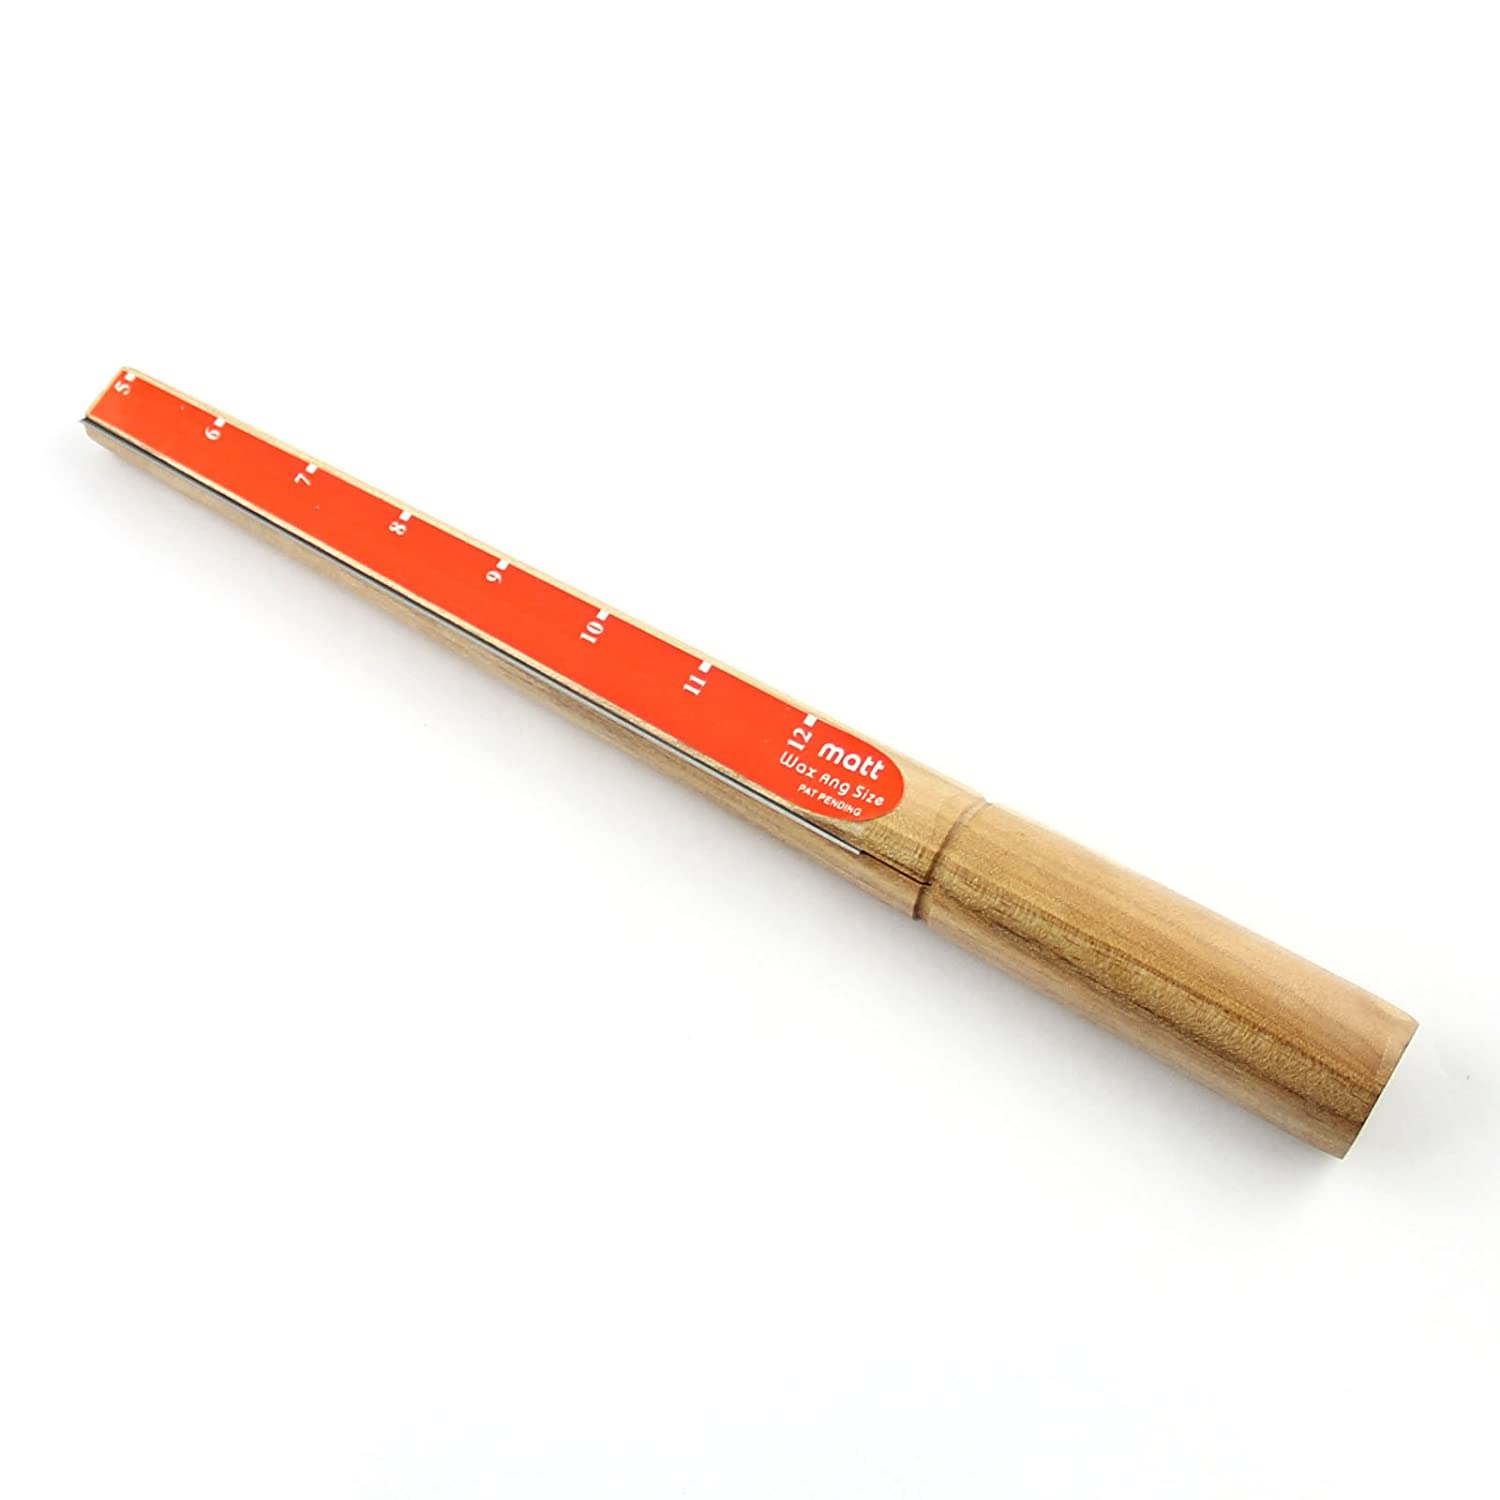 BODYA orange wood Removing Carve Ring Mandrel Stick Sizer Finger Sizing Measuring Stick - Size 5-12 Guage JW281